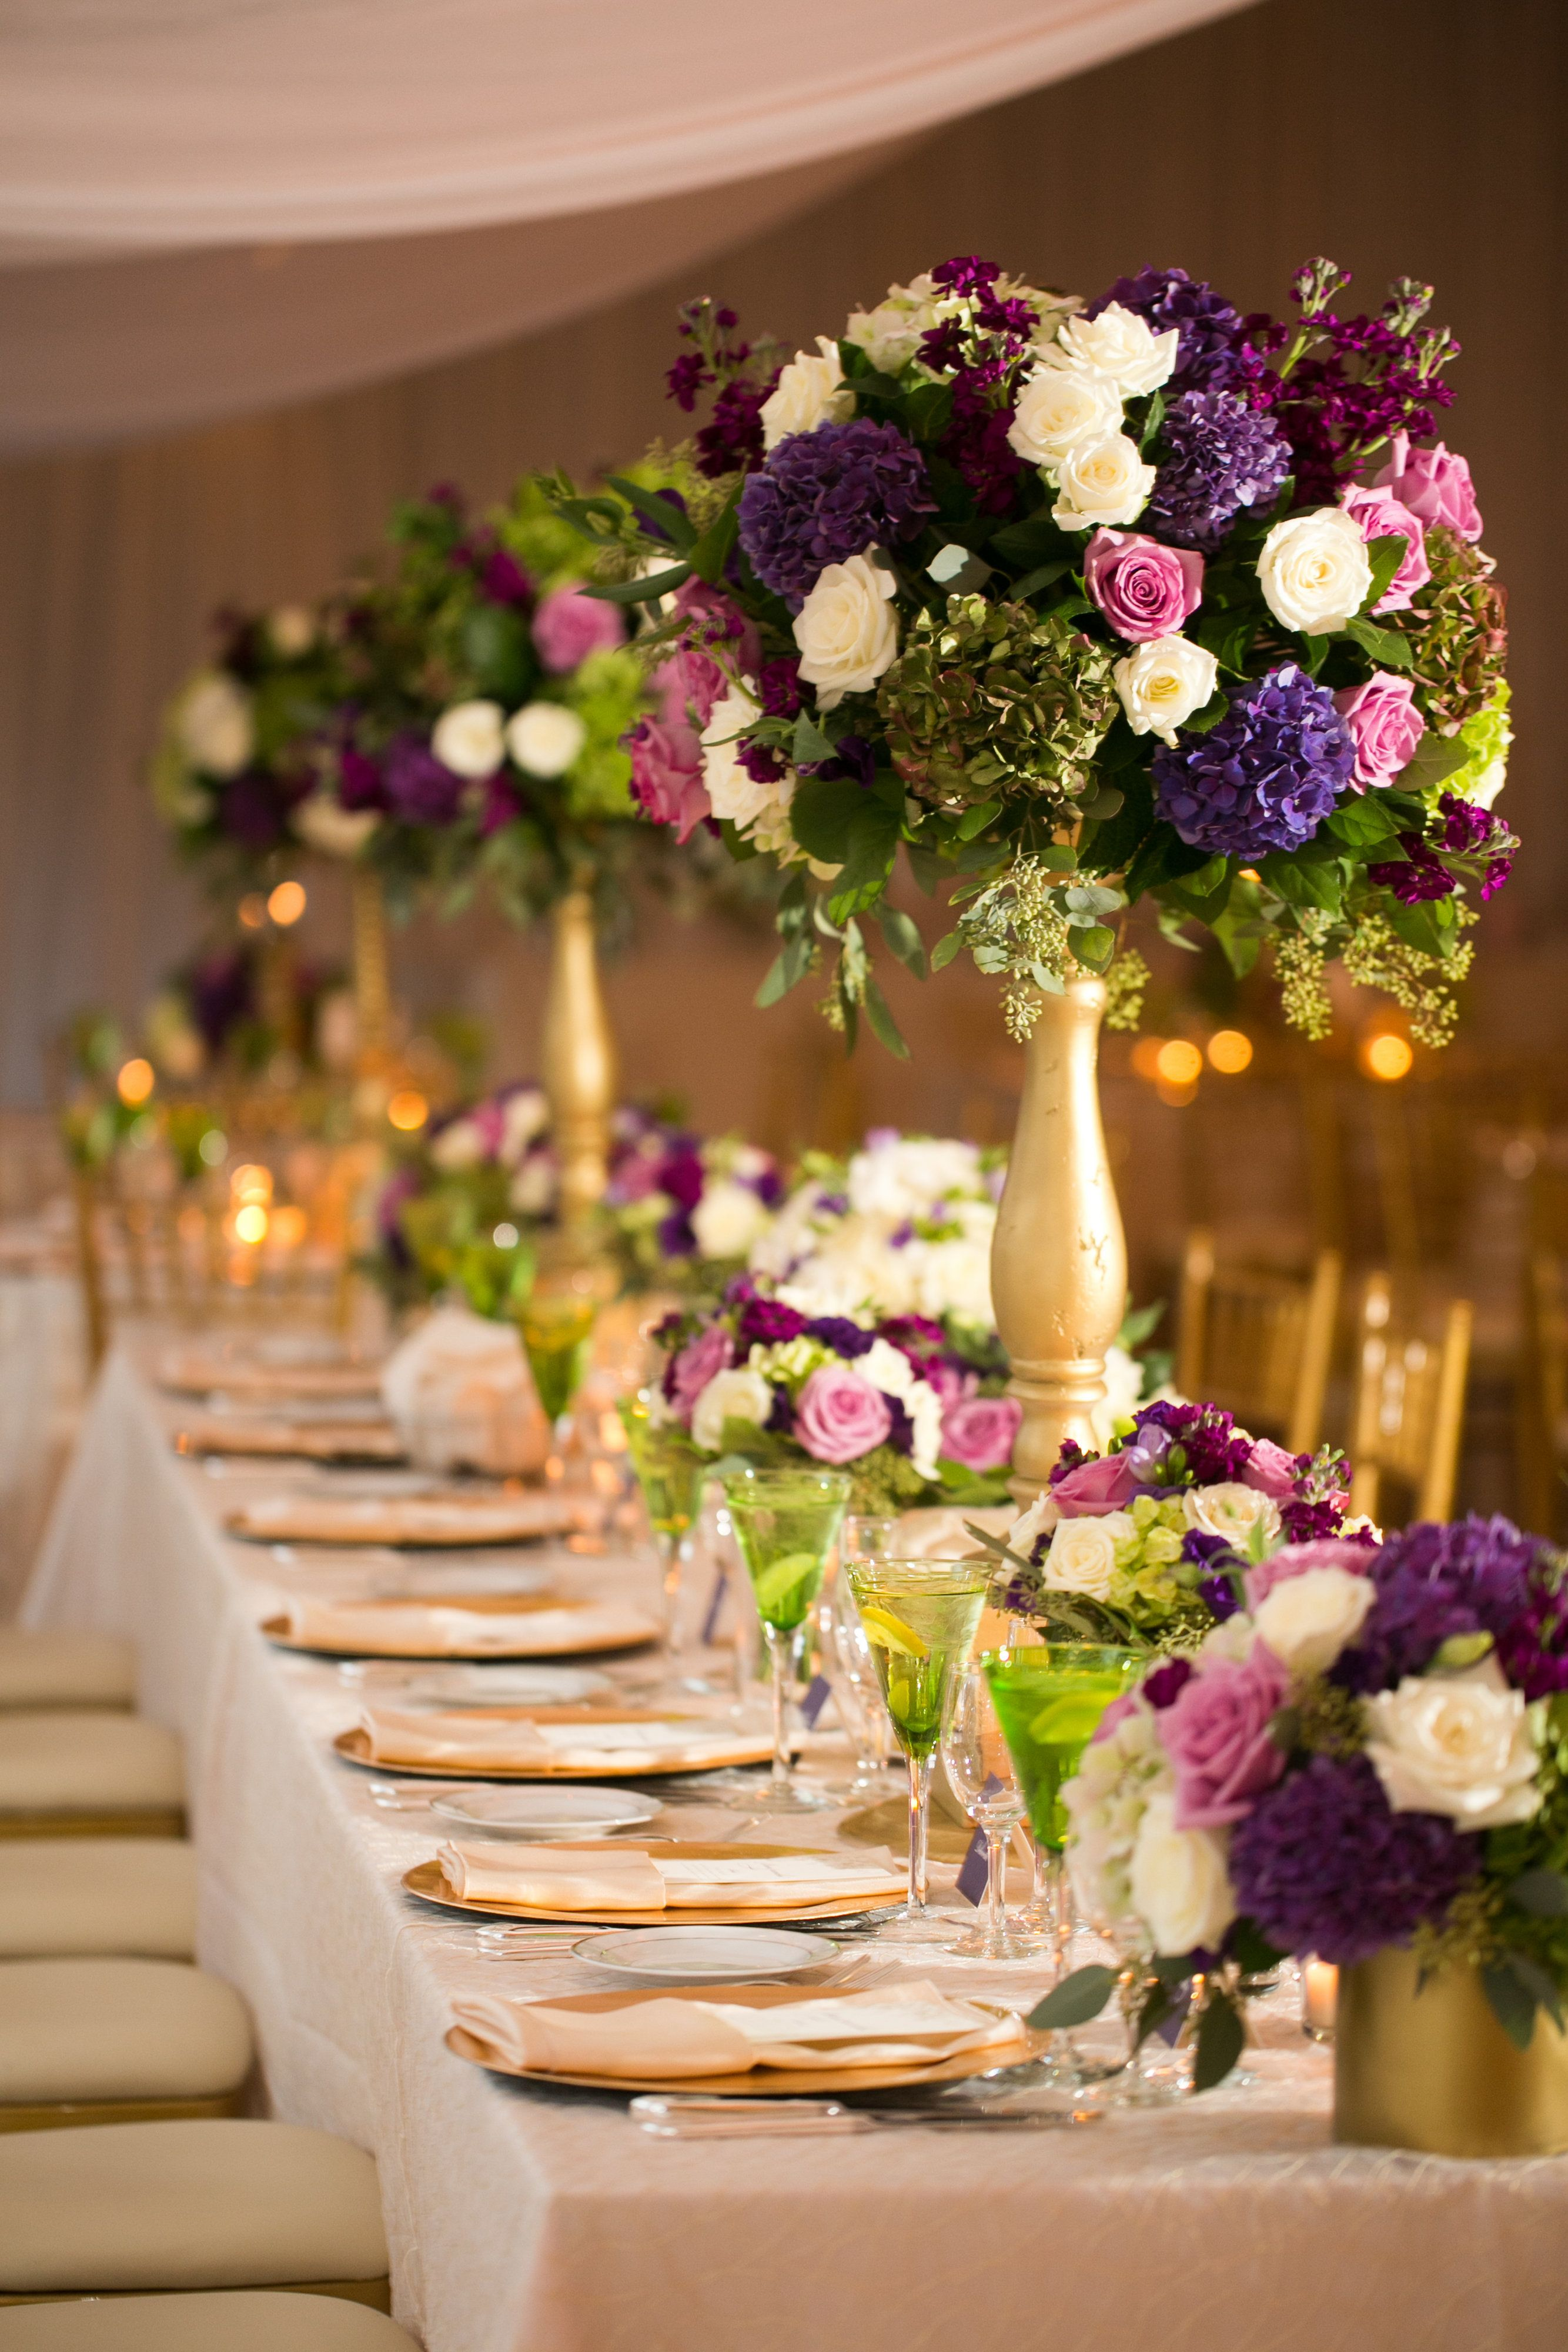 Wedding vase decorations november 2018 Tall jeweltoned table centerpieces with touches of ivory  gold